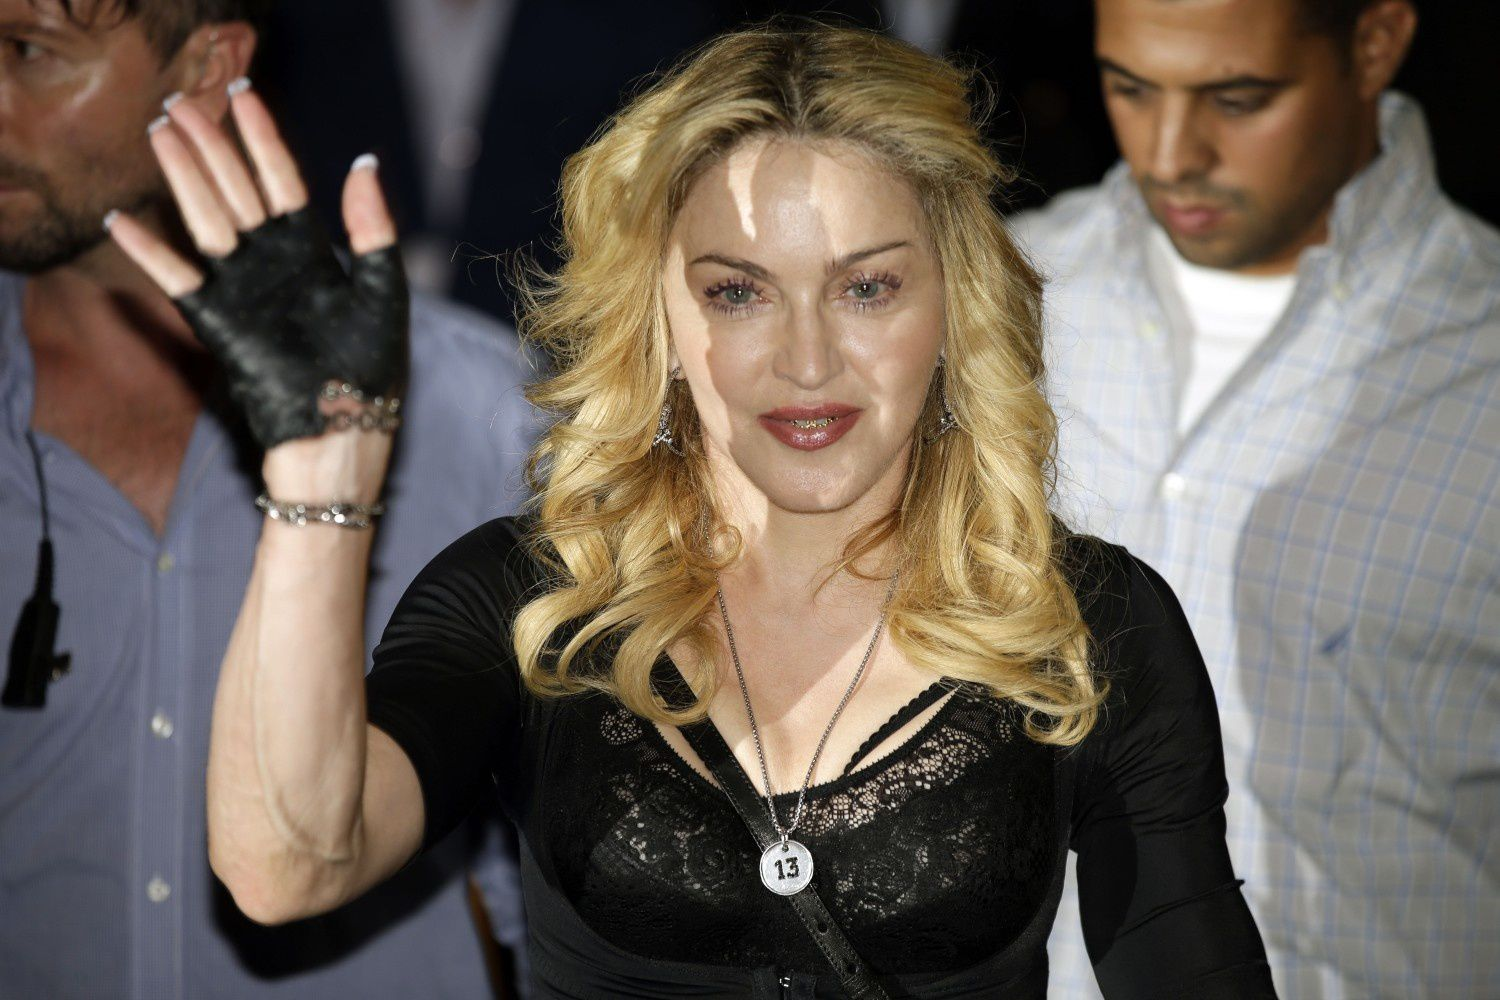 http://a395.idata.over-blog.com/5/47/08/55/2013-dossier-4/20130822-pictures-madonna-hard-candy-fitness-center-rome-12.jpg